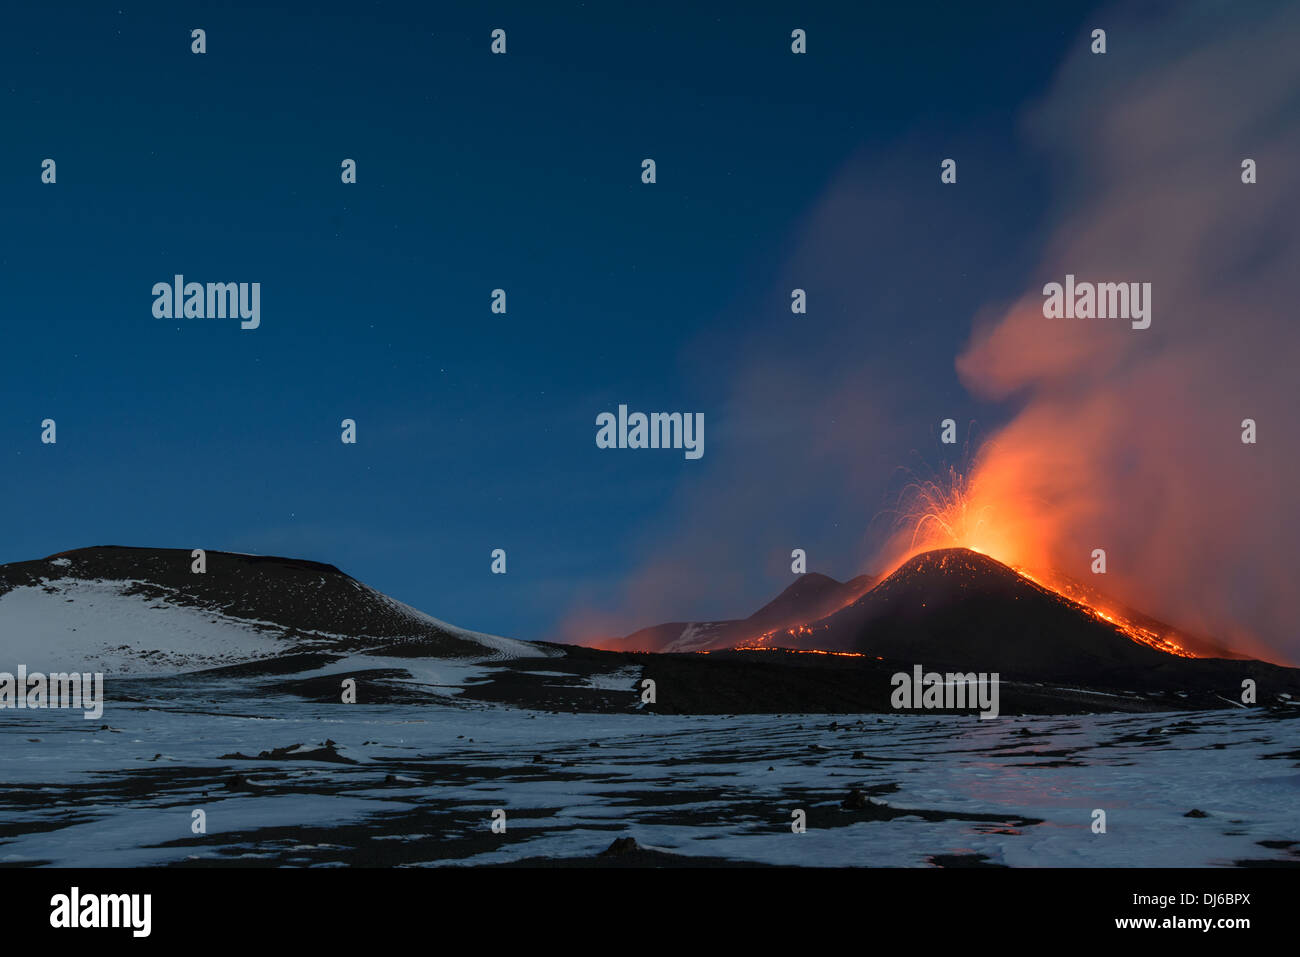 Eruption of Mt Etna volcano in November 2013, night-time violent paroxysm of New SE crater with lava fountains and lava flows. - Stock Image